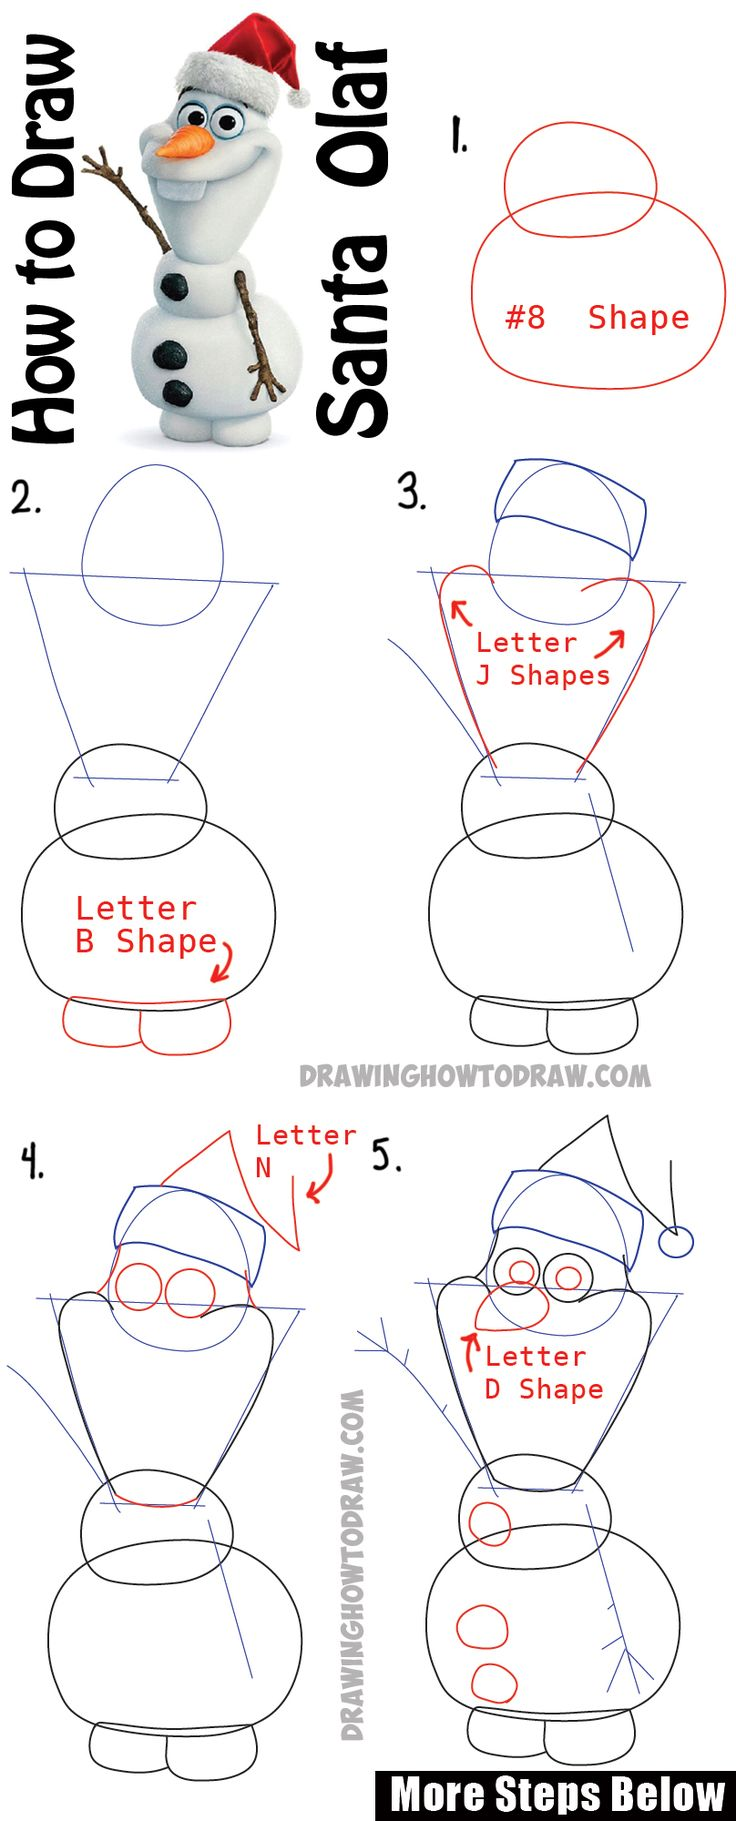 How to draw batman easy drawingnow - How To Draw Olaf With Santa Claus Hat On Step By Step Drawing Tutorial How To Draw Step By Step Drawing Tutorials